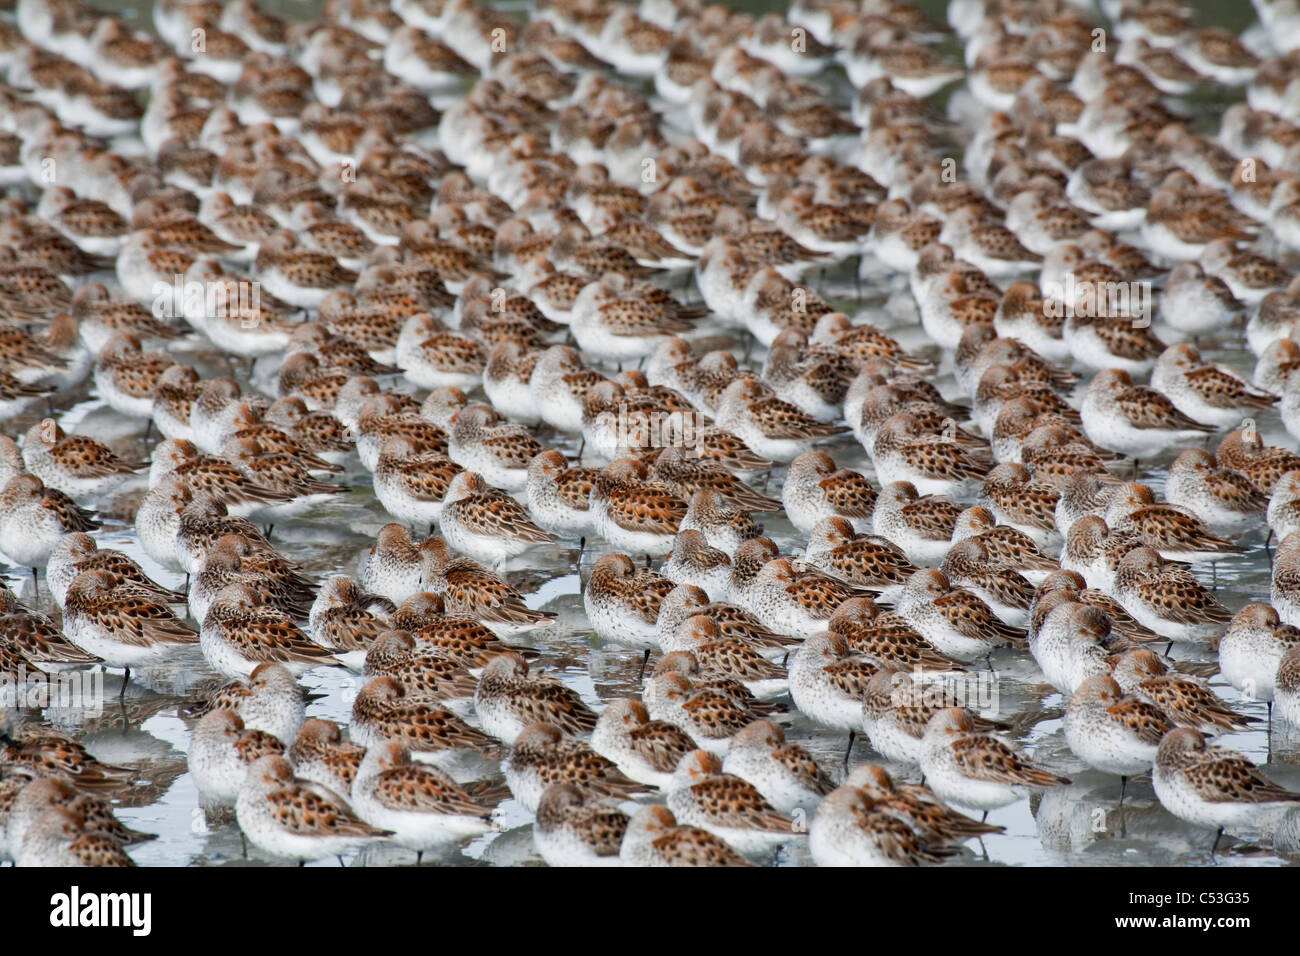 Large flock of Western Sandpipers on the mud flats of Hartney Bay during Spring migration, Copper River Delta, Alaska - Stock Image